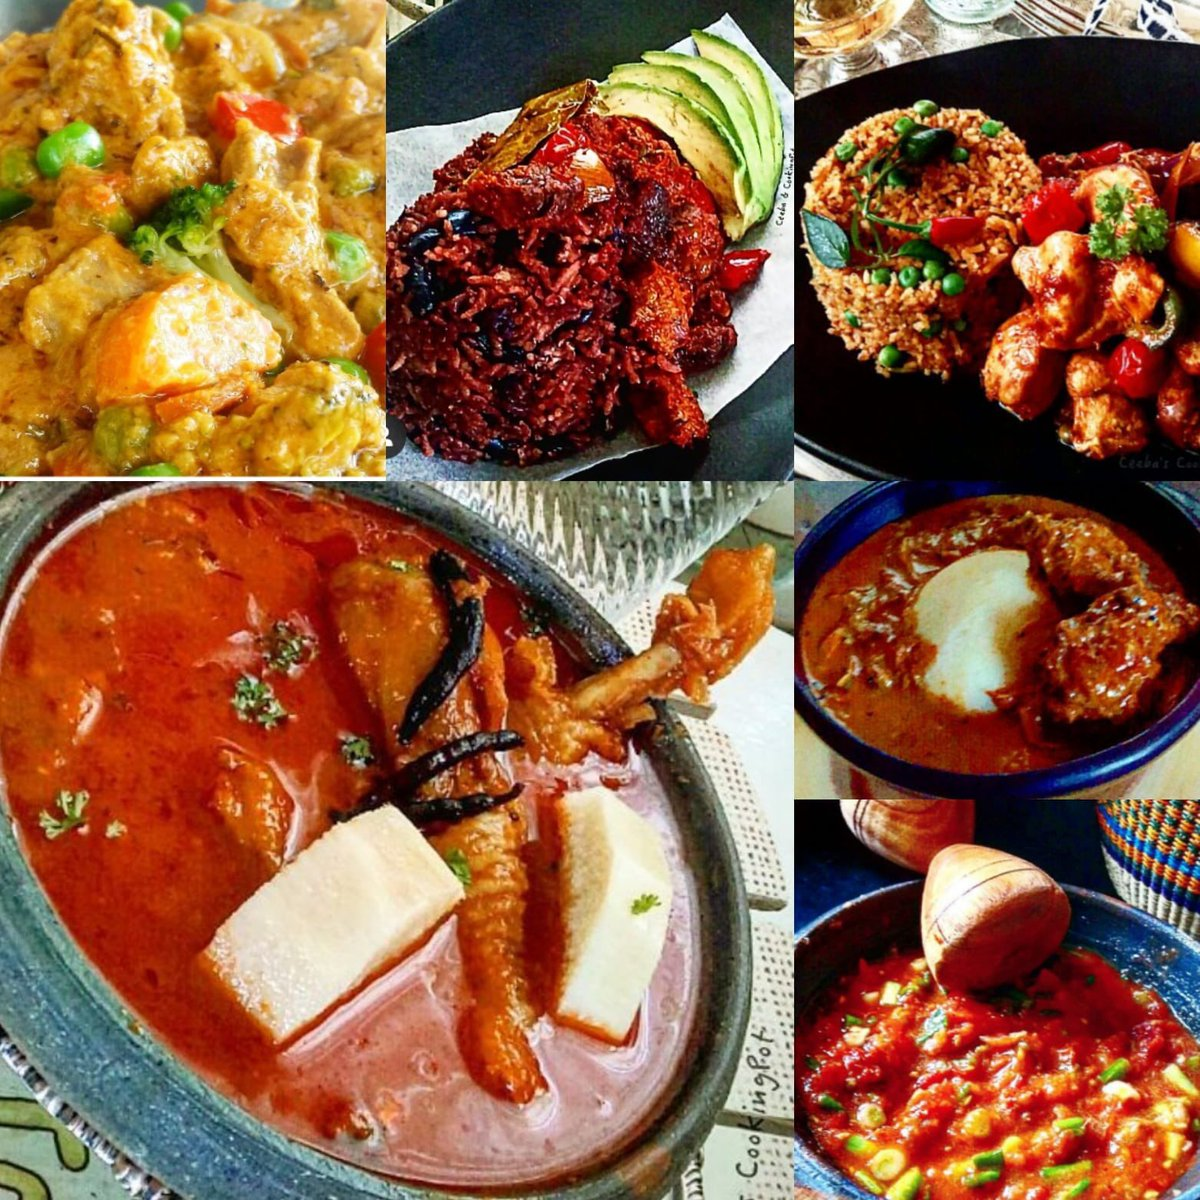 This is the second of a series of articles from Amba Kabore-Sharkey  @CeebaFoods She shares incredible insights about African foods.   Click to read more https://t.co/Qmeq9fCOcV   #healthyfood #healthyliving #ghanaianfood #powerfoods #traditionalafricanfoods #africanfood https://t.co/RitmrlIlsi